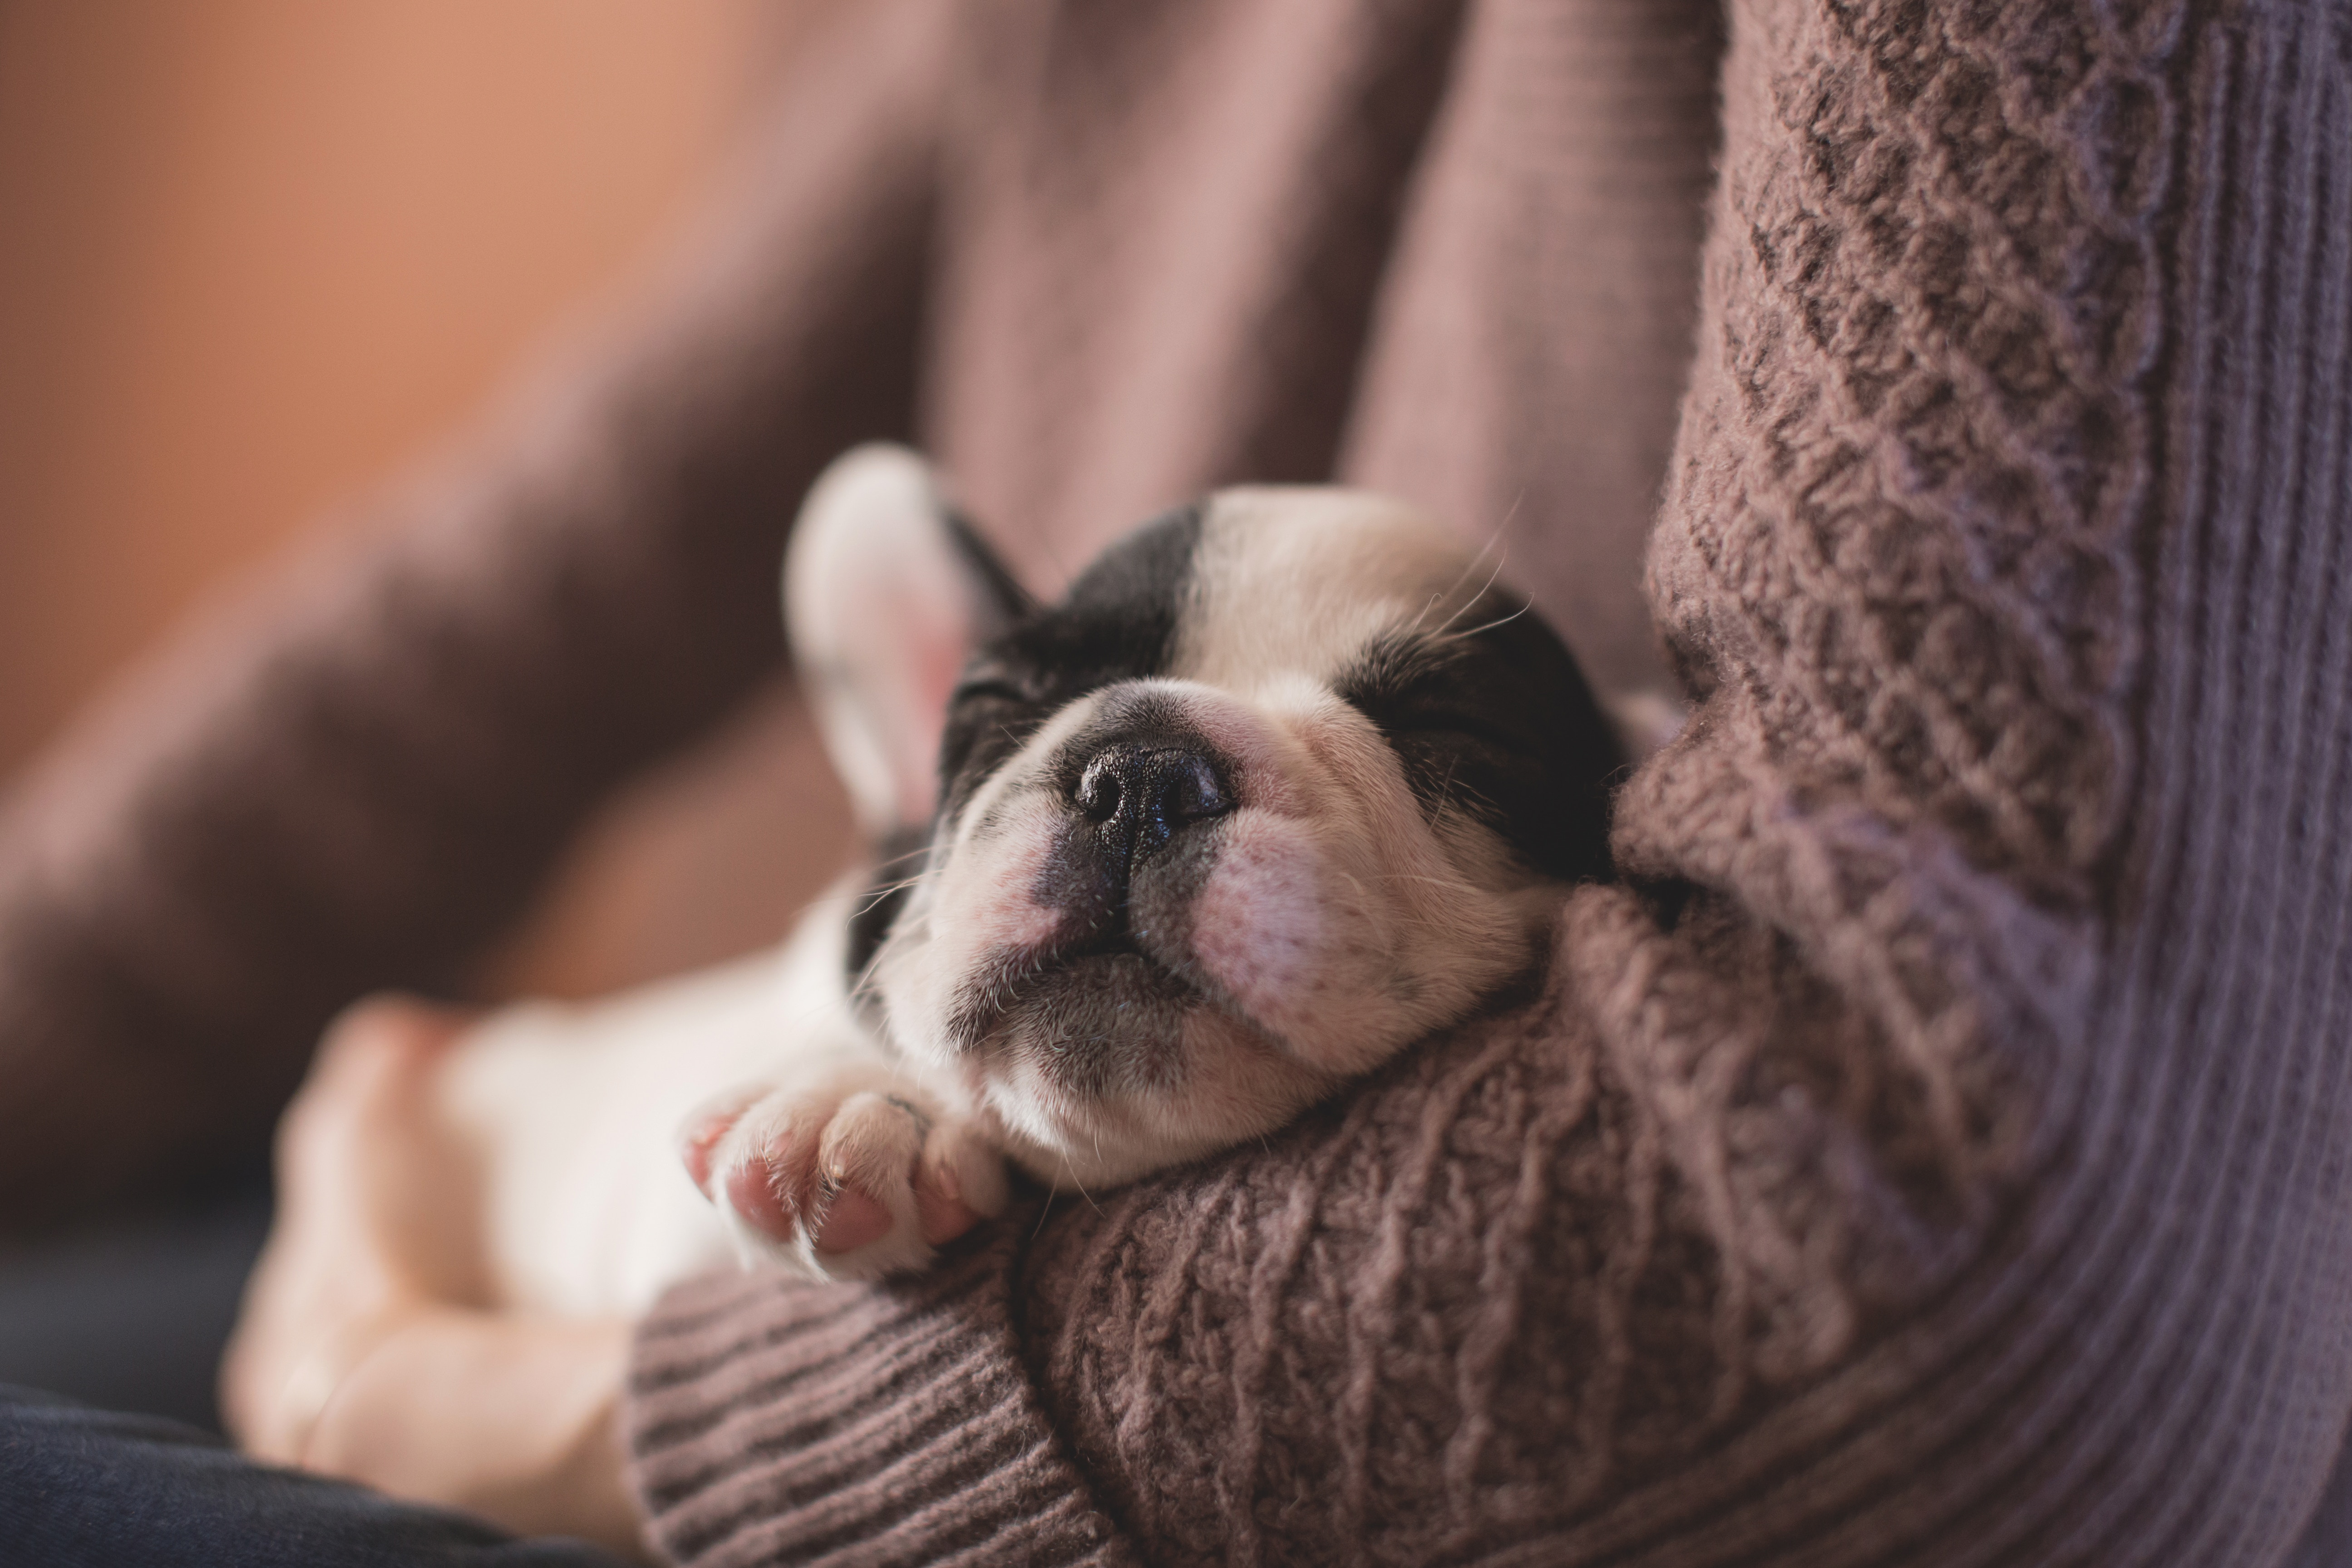 A small puppy sleeps in the crook of a person's elbow.